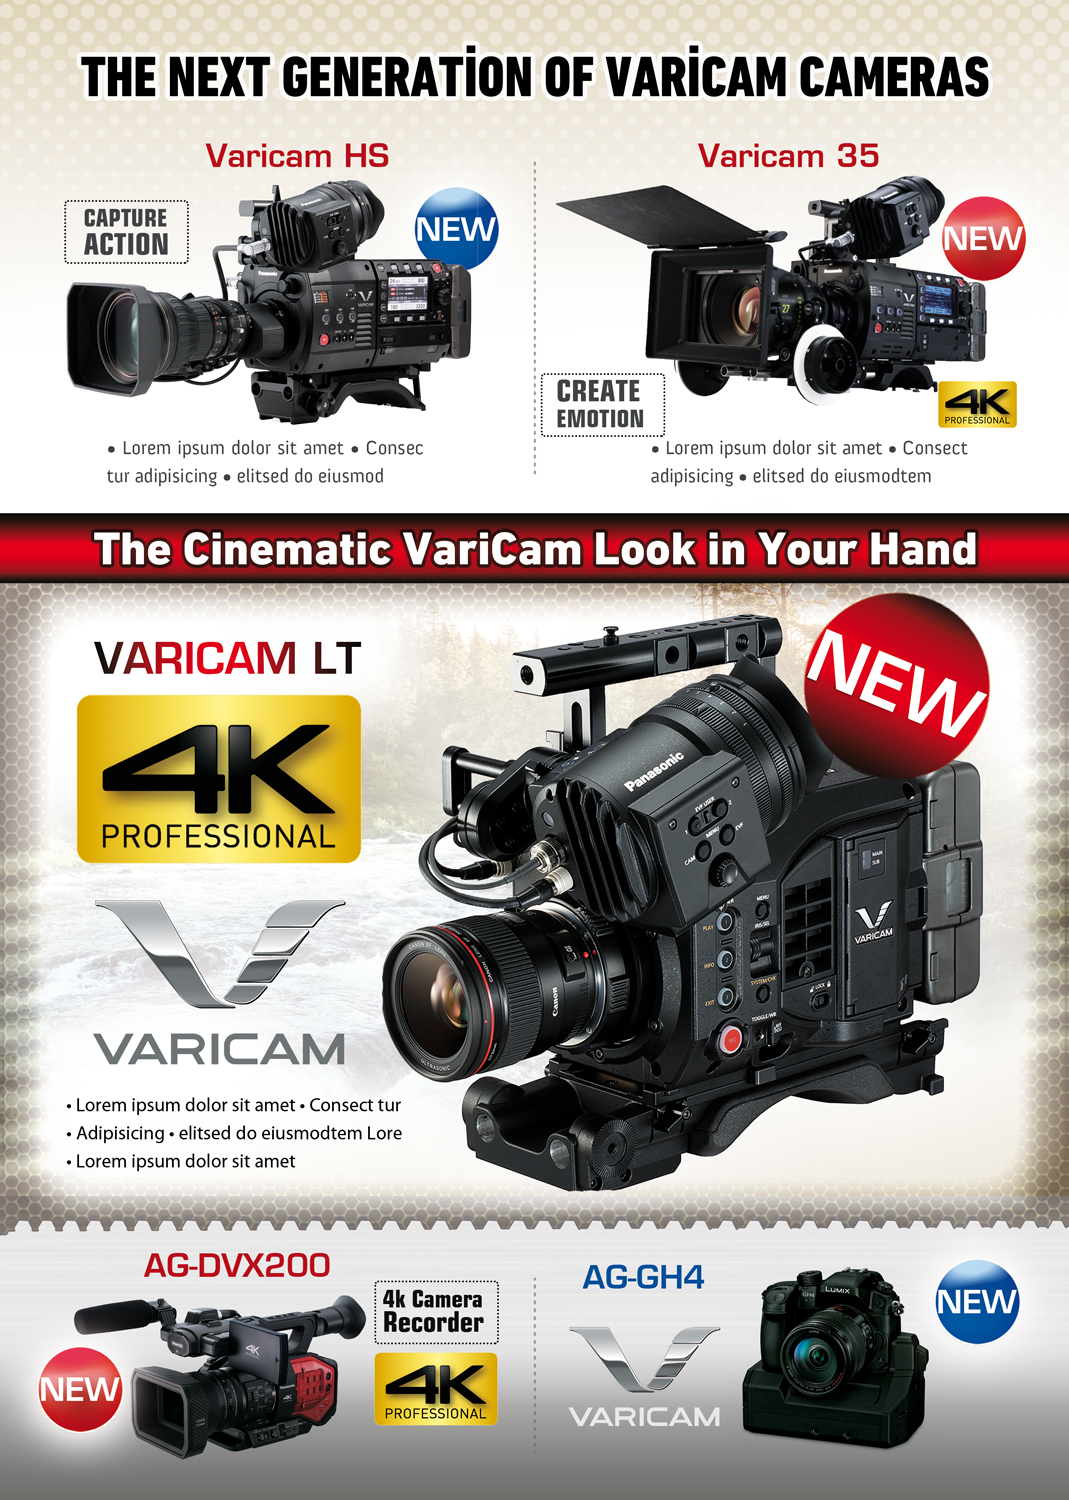 Advertisement Design By UrbainFX For Pro Video Systems